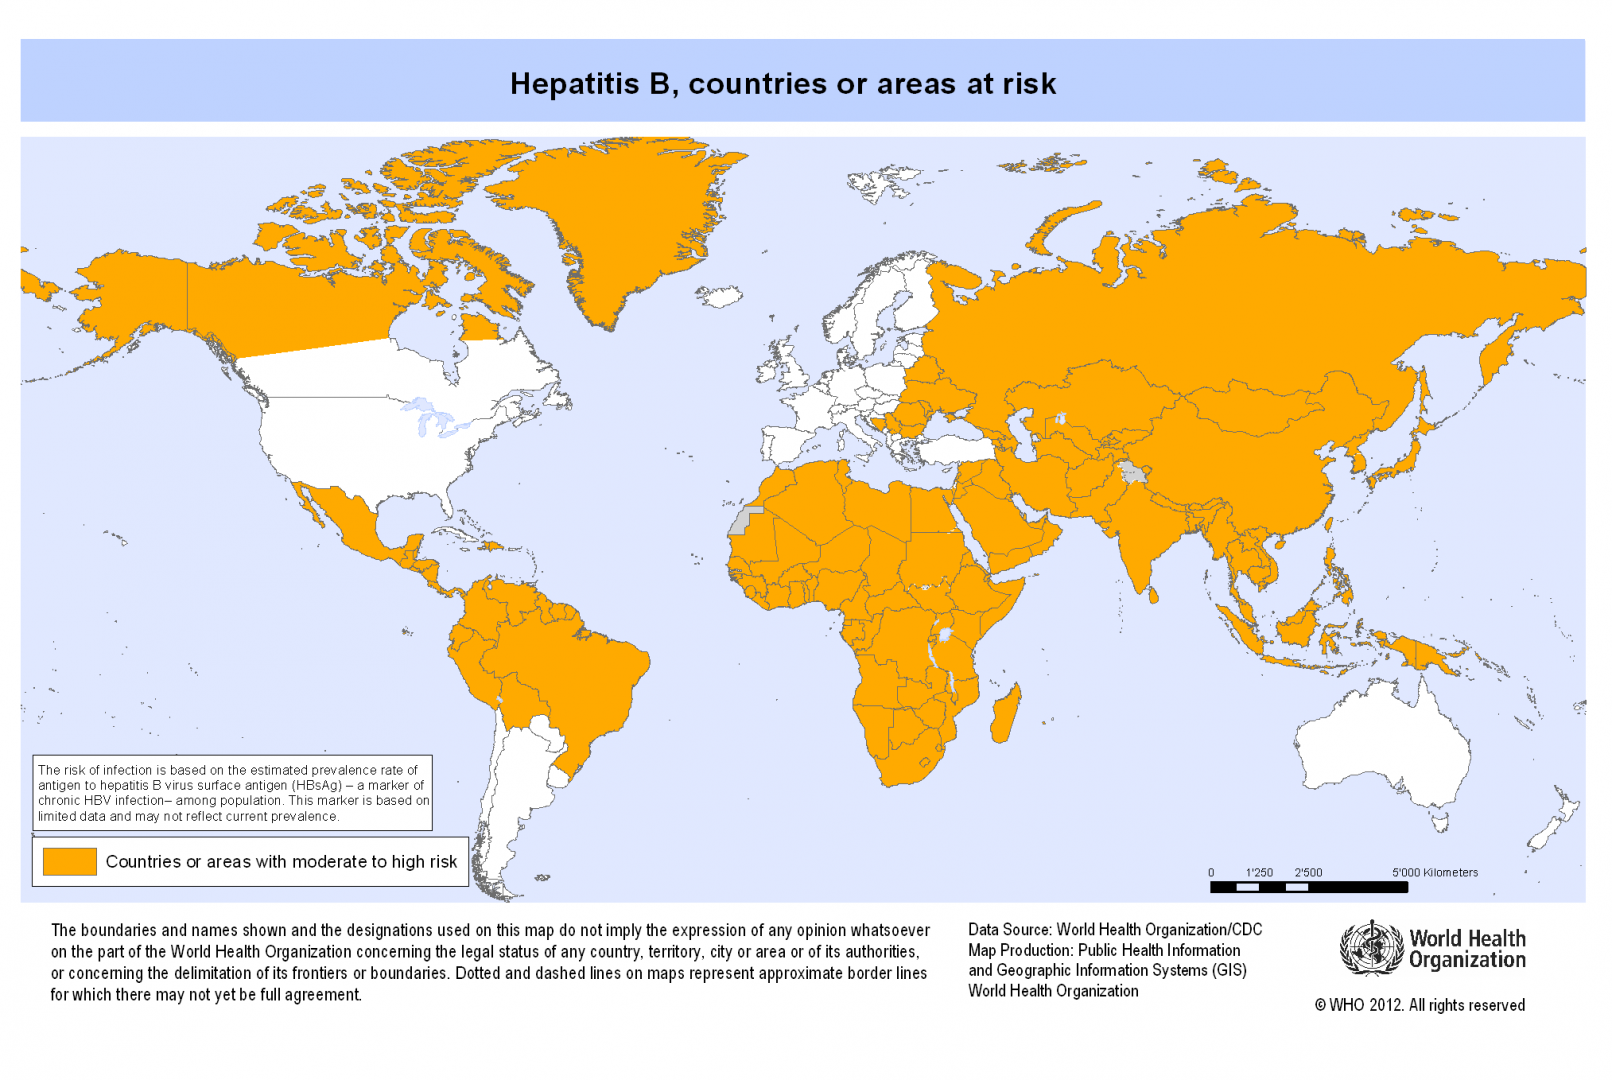 Hepatitis B countries at risk